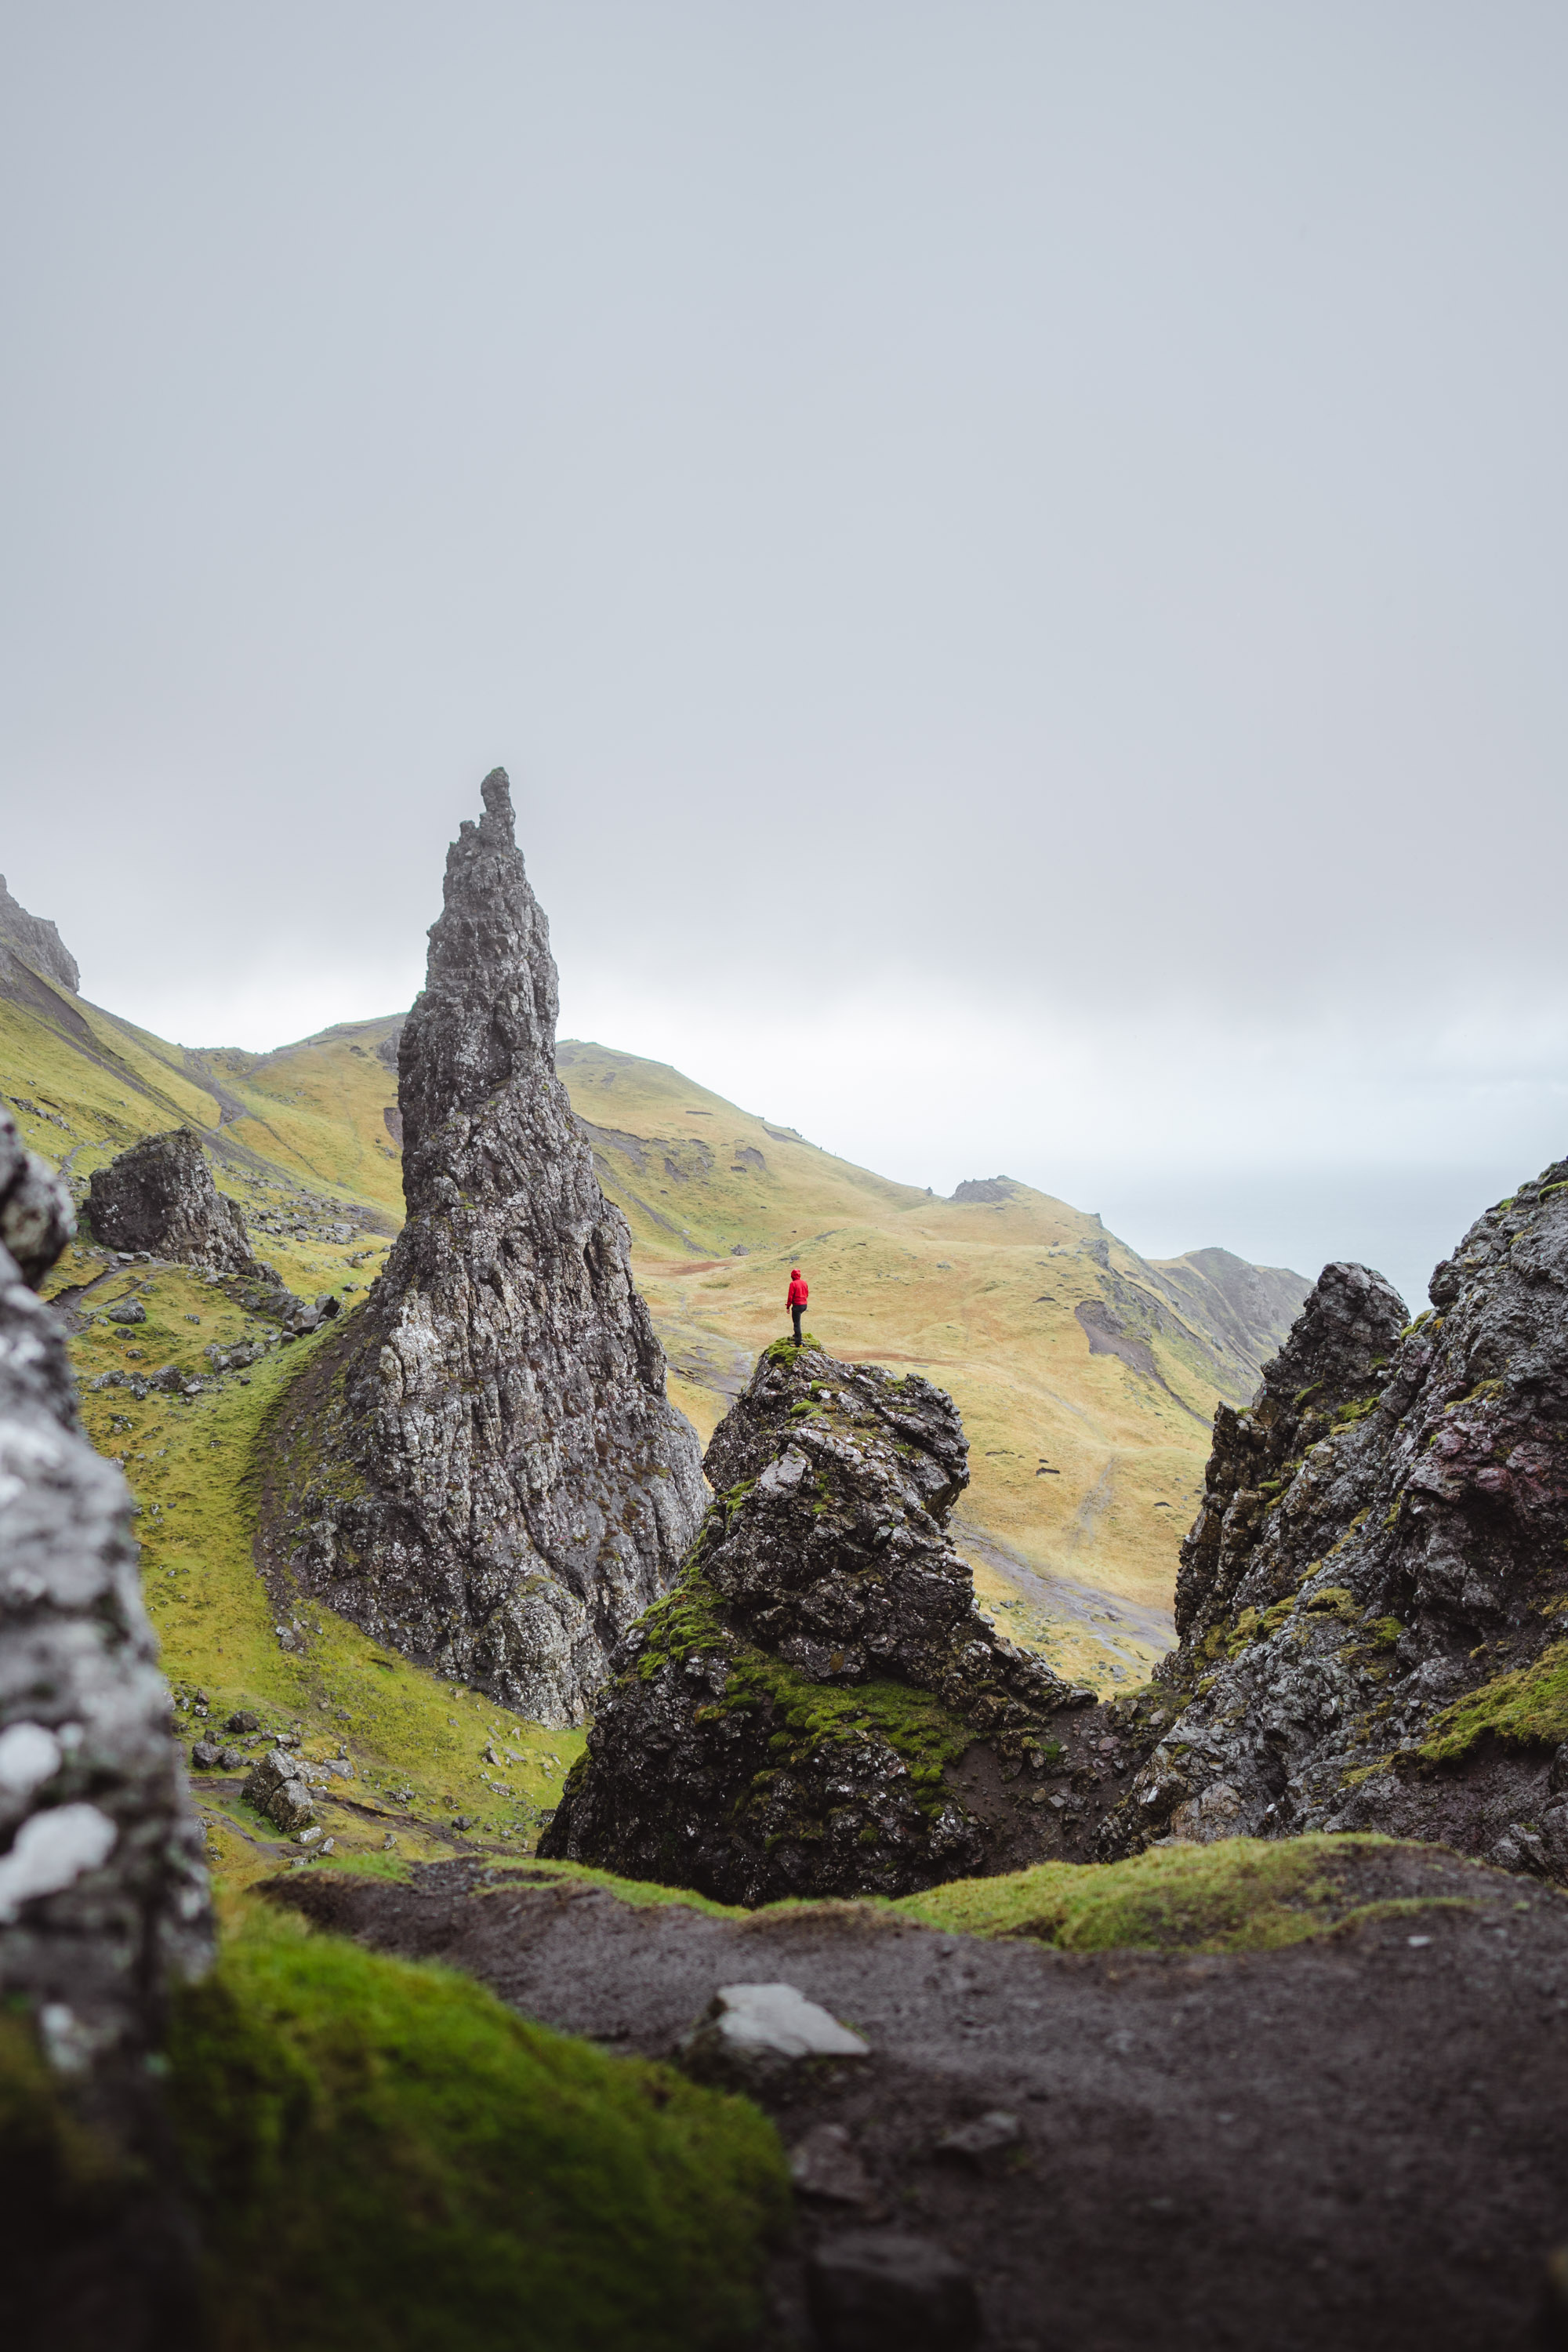 Man with a Mammut red jacket climbing in Old Man of Storr, Scotland